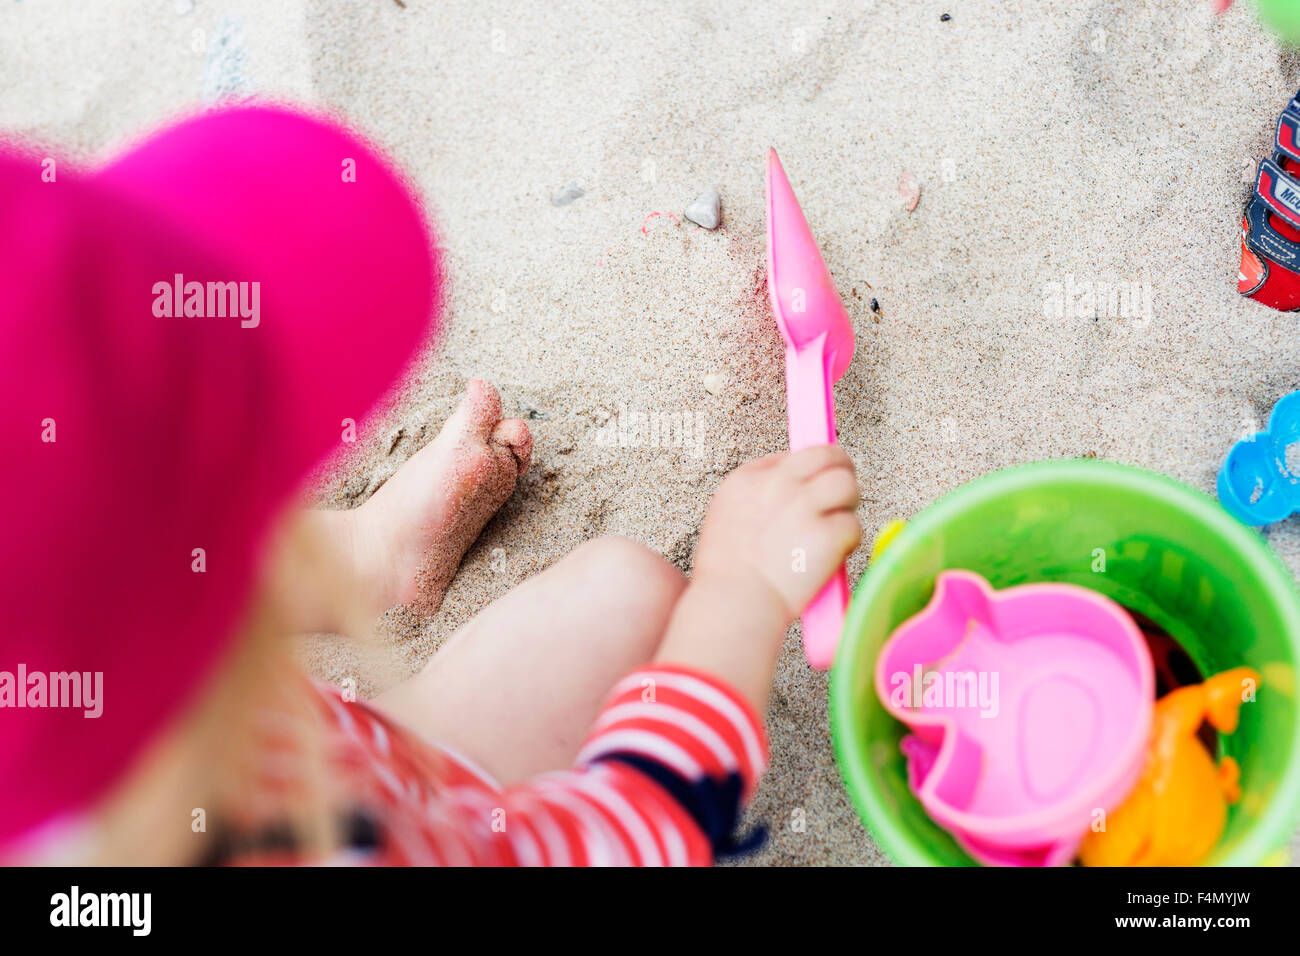 High angle view of girl Playing with toys sur sand at beach Photo Stock